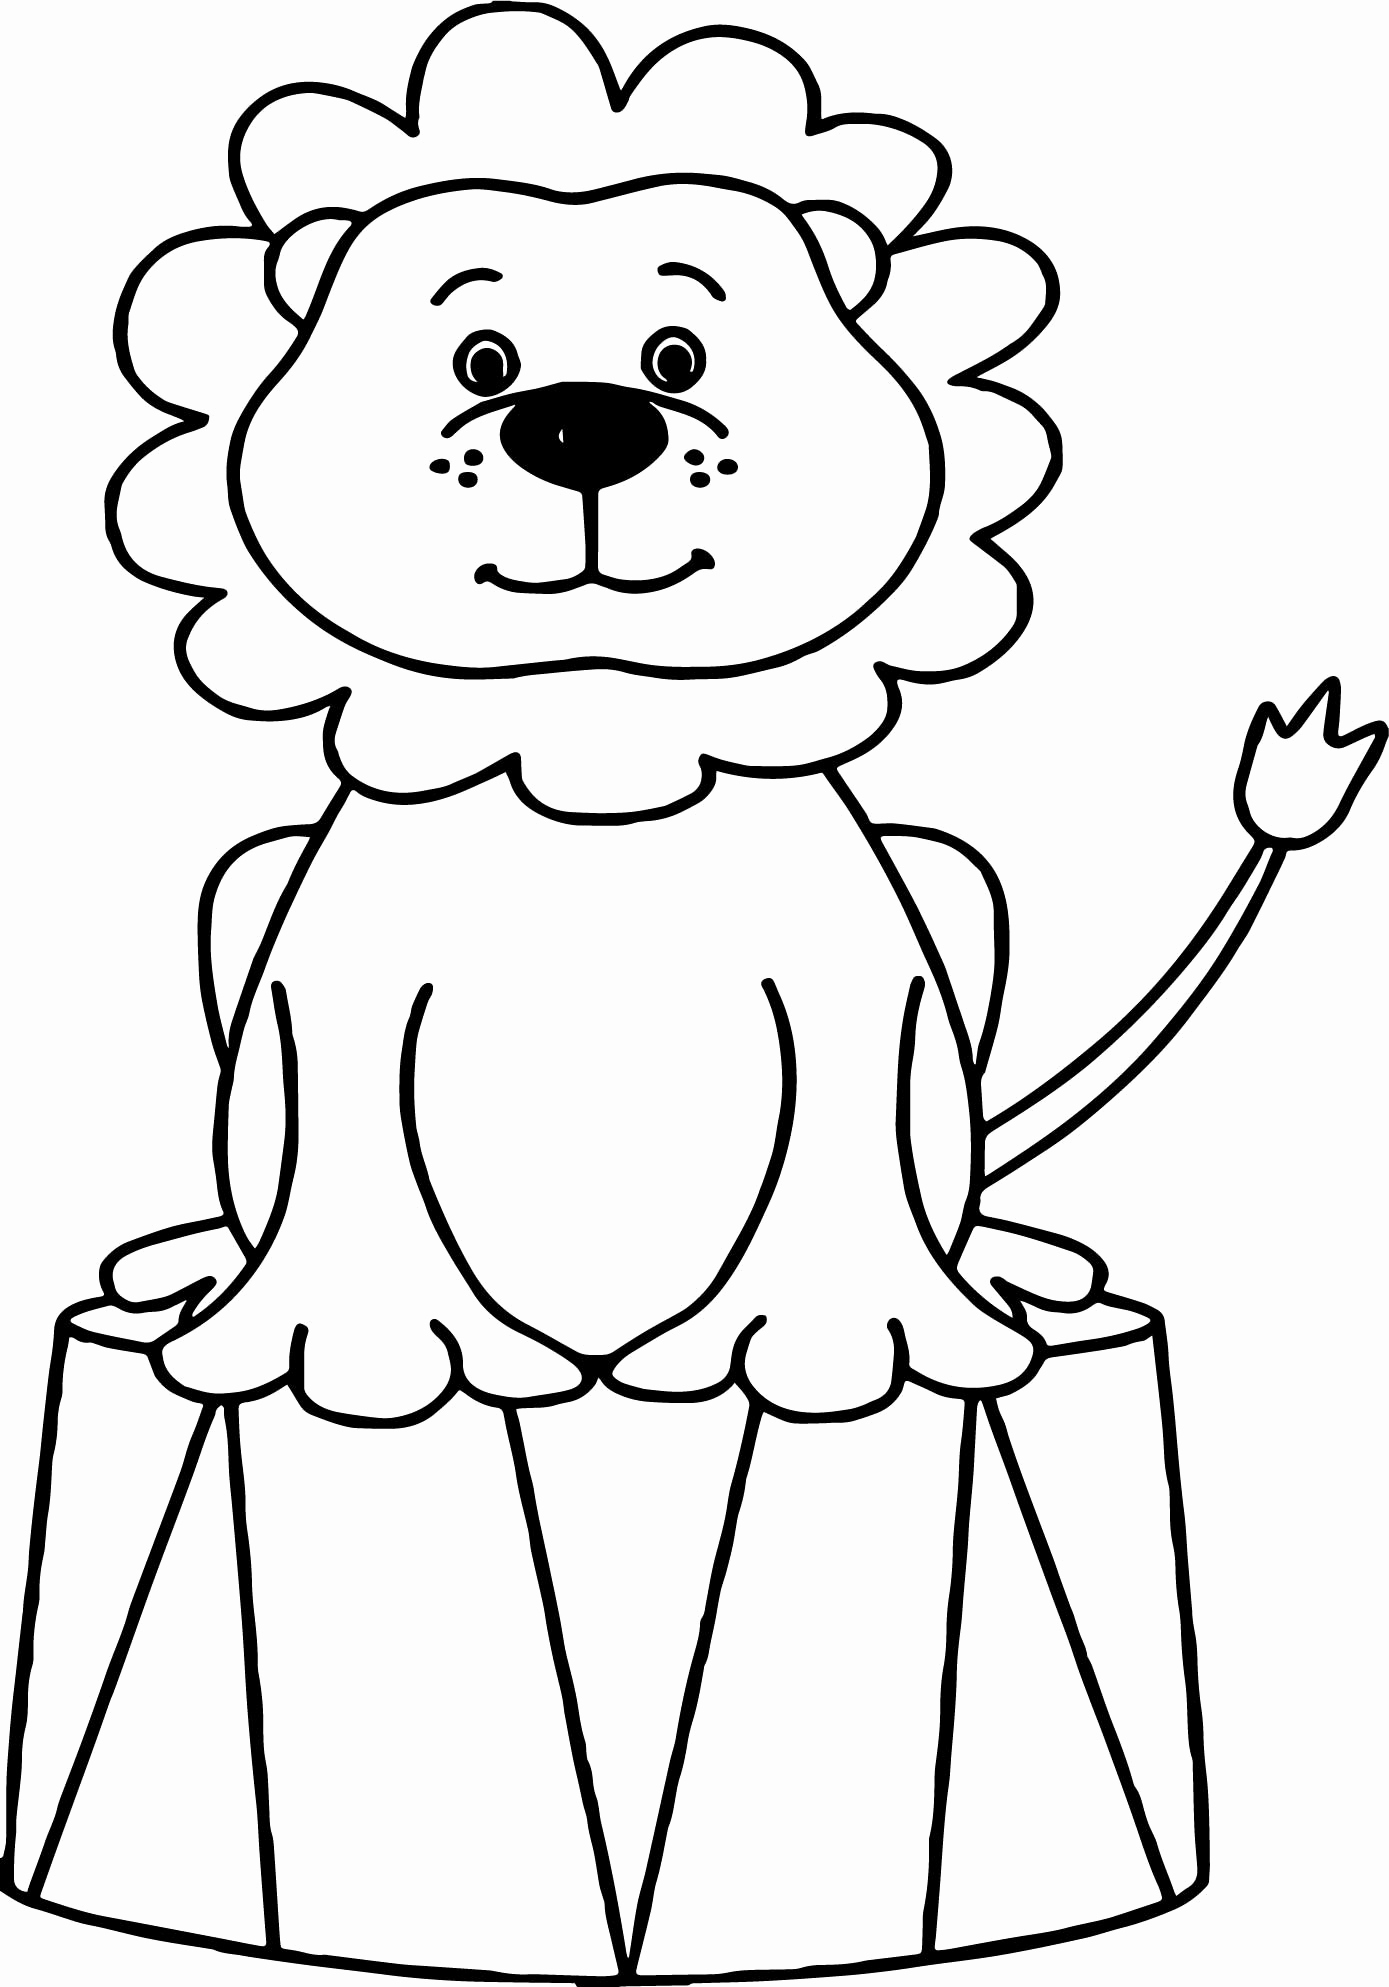 Clown Coloring Pages To Print